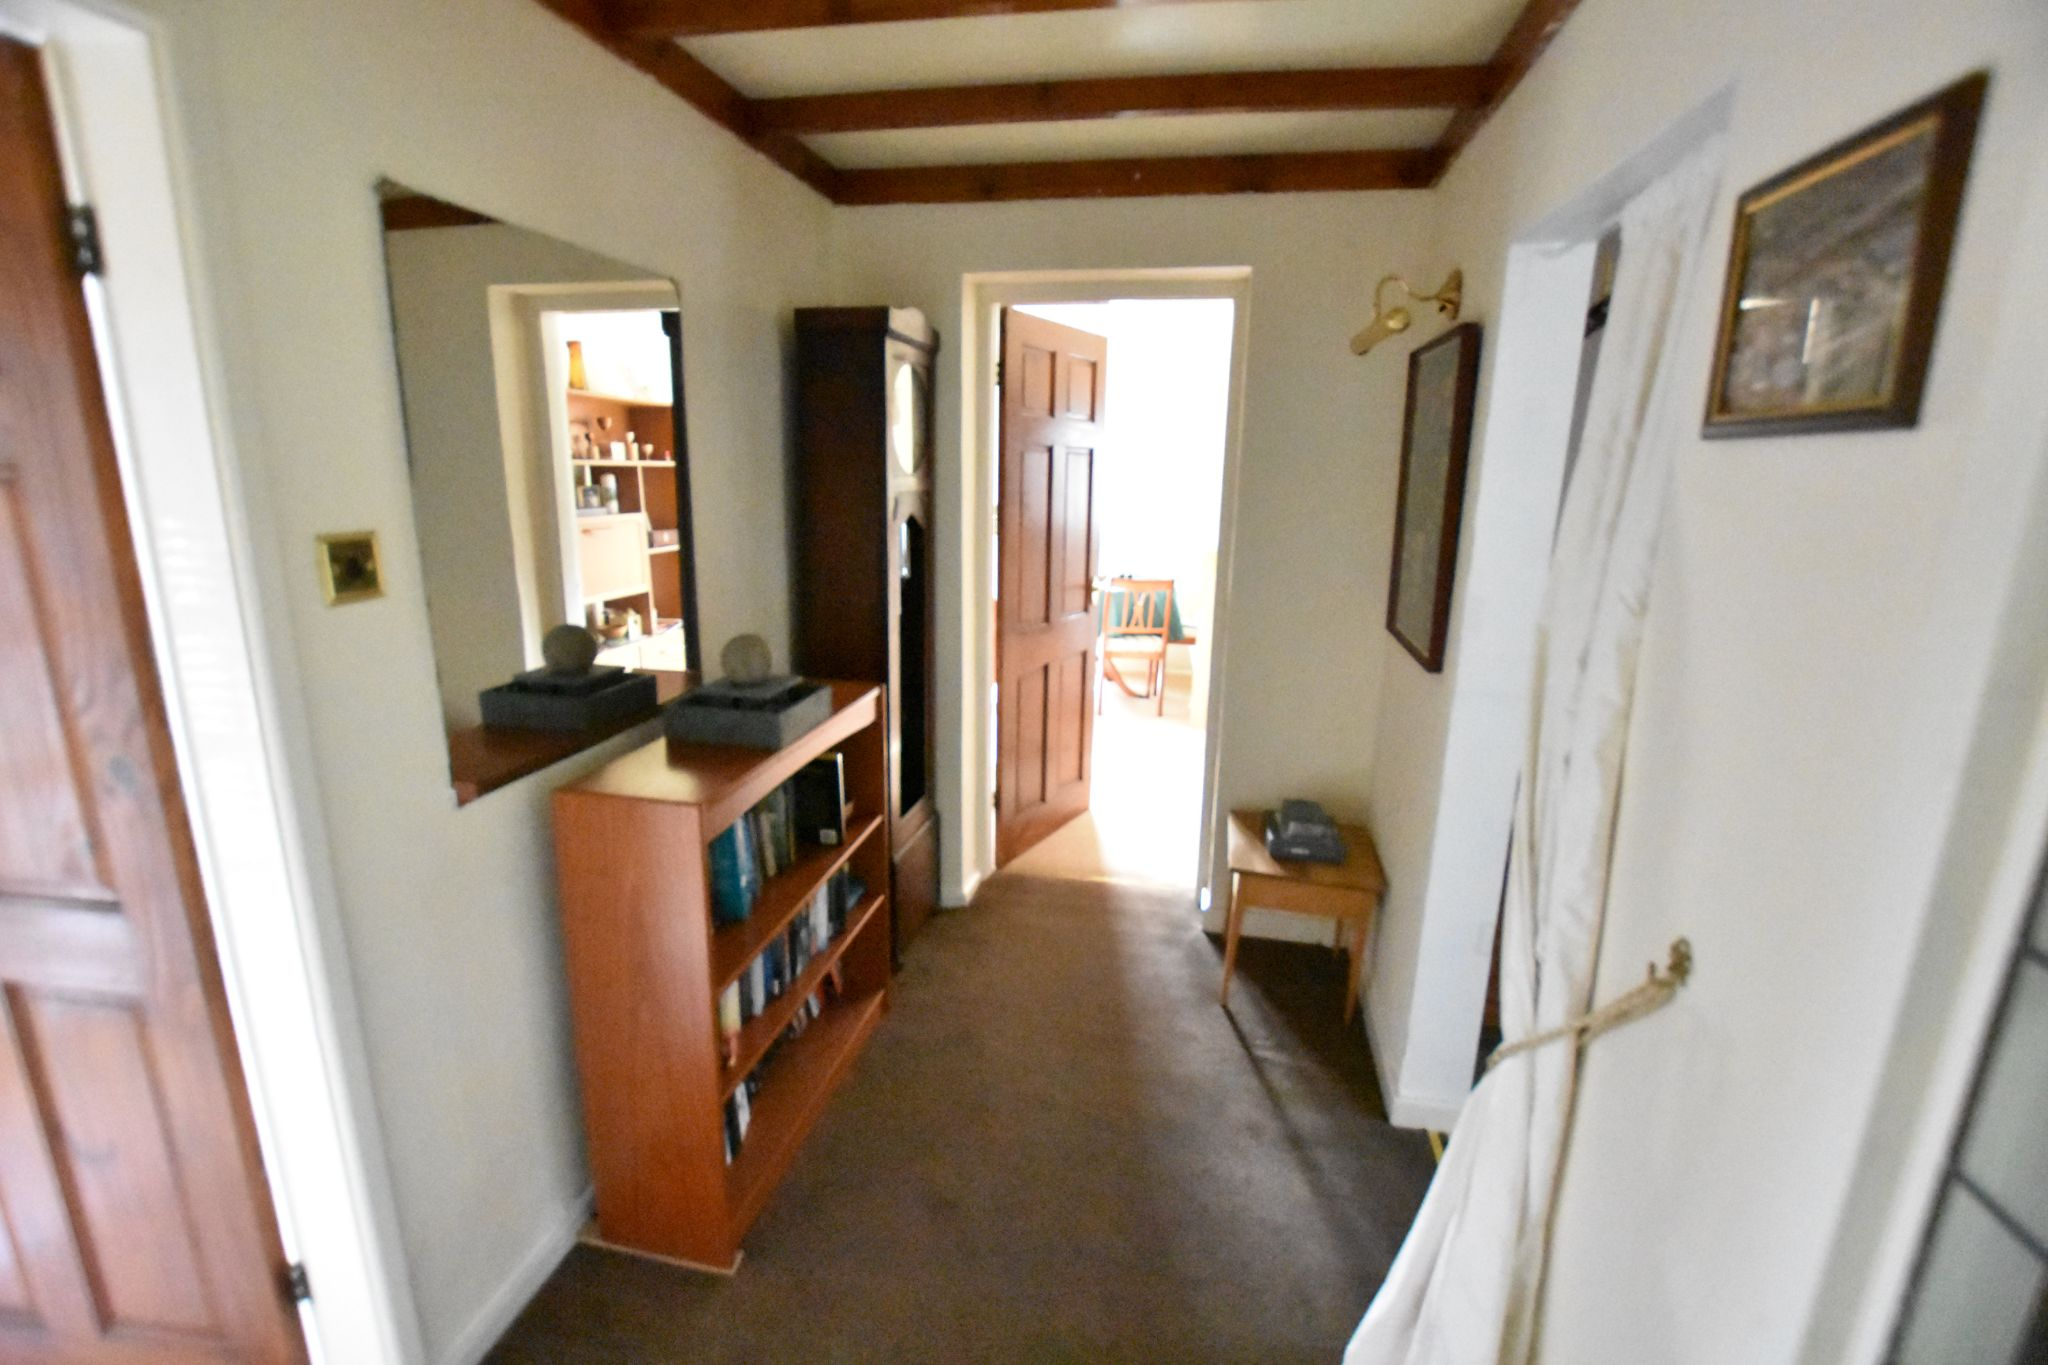 Image 1 of 2 of HALLWAY, on Accommodation Comprising for